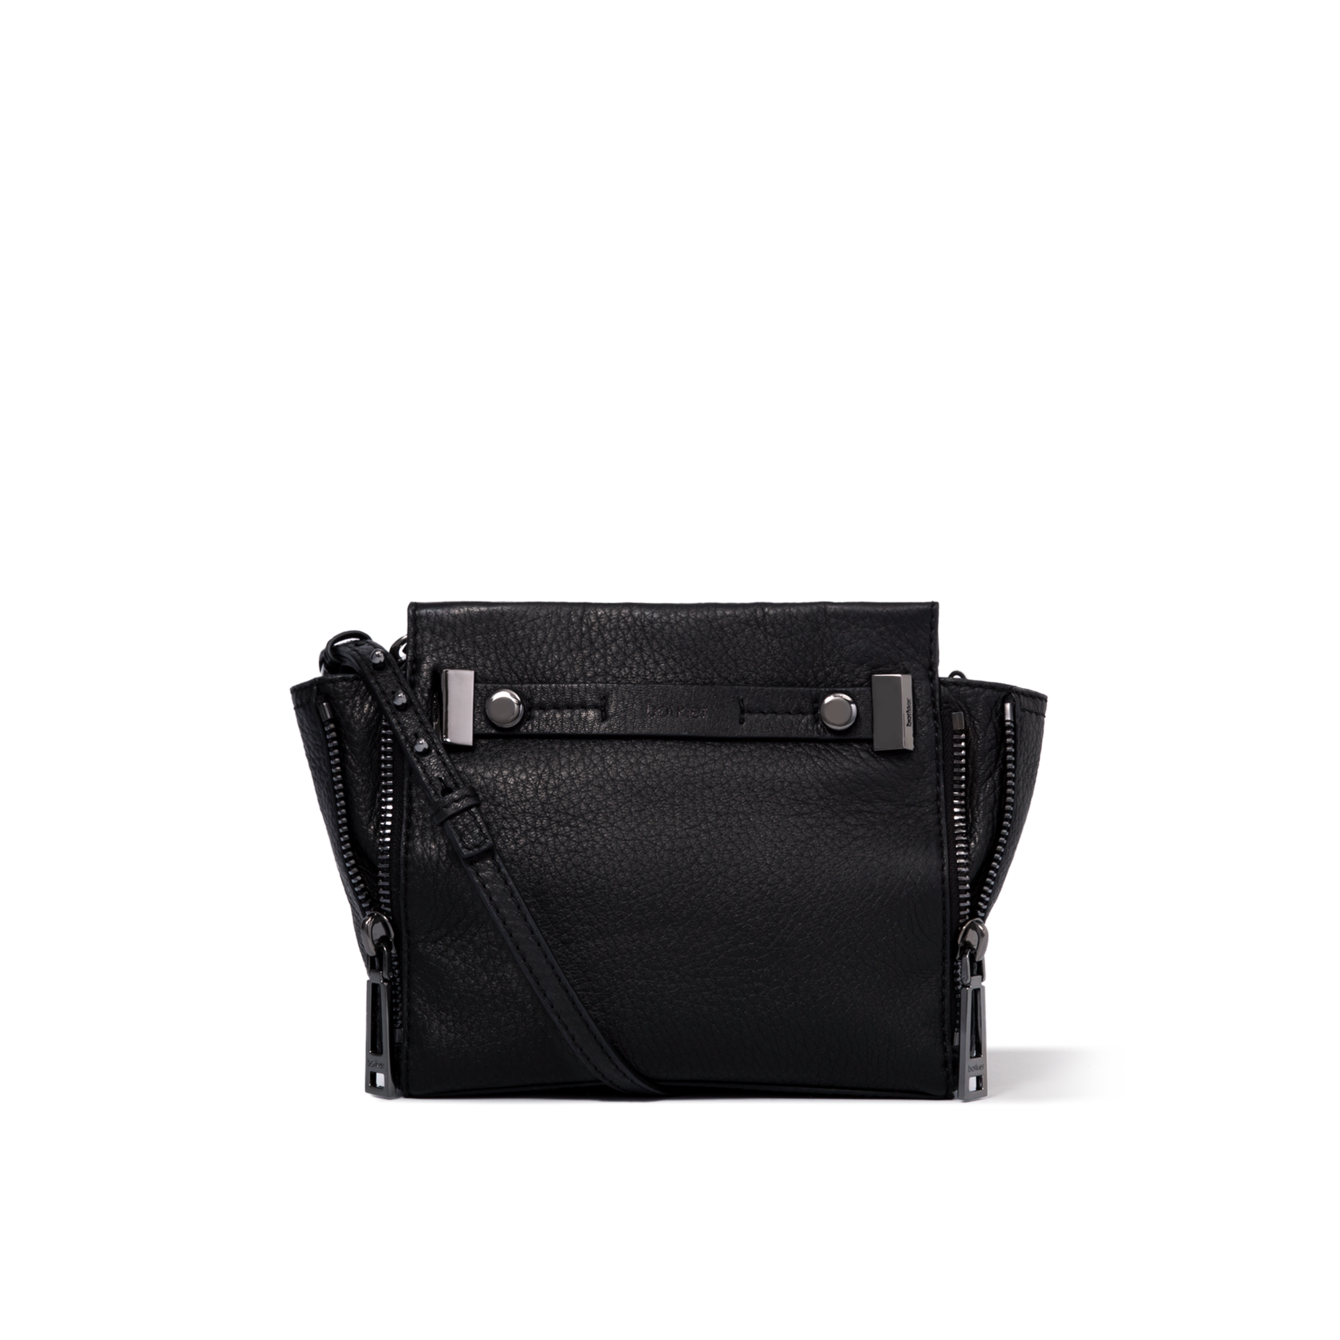 Leroy Crossbody - Designer Leather featured items | Botkier